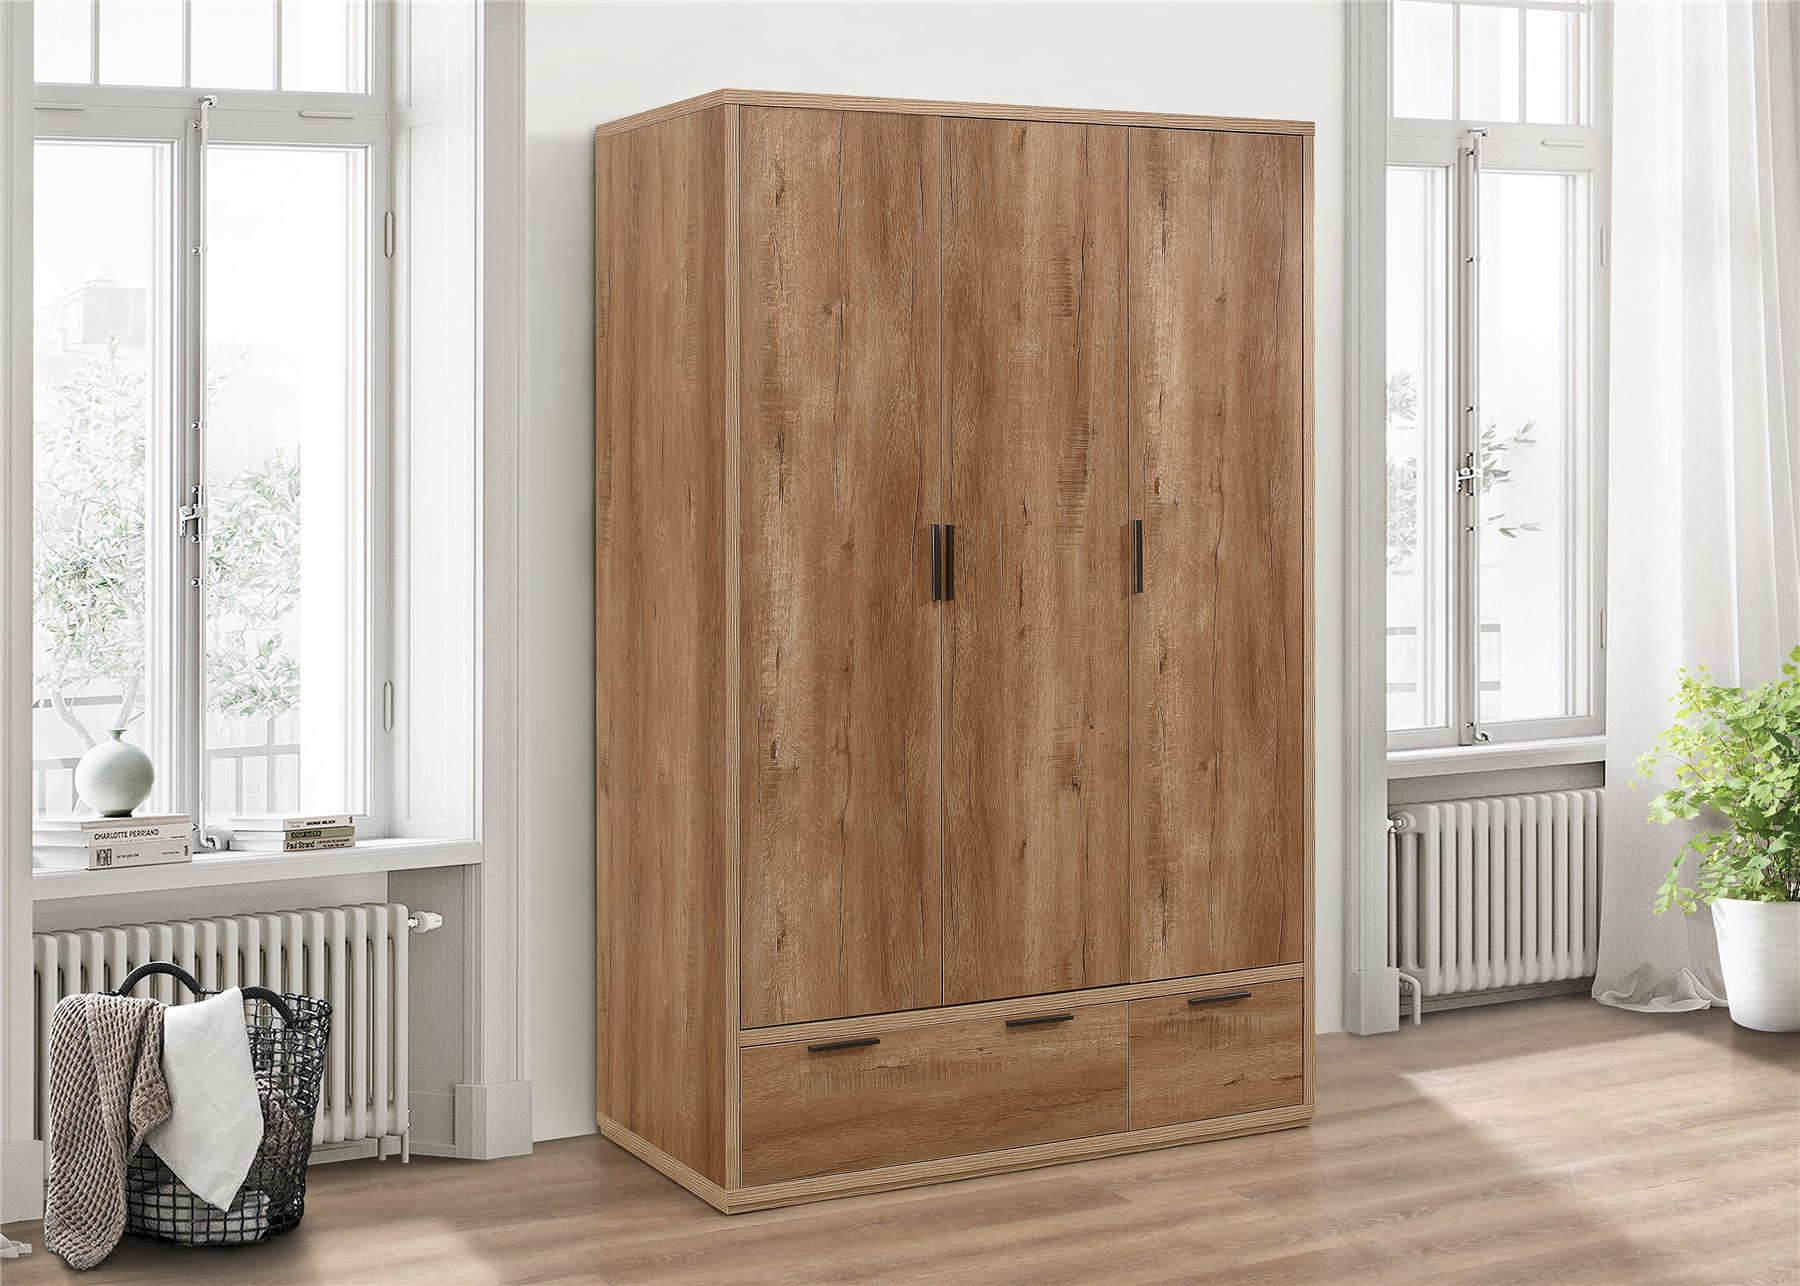 Birlea Stockwell Rustic Oak 3 Door 2 Drawer Wardrobe Urban Industrial design